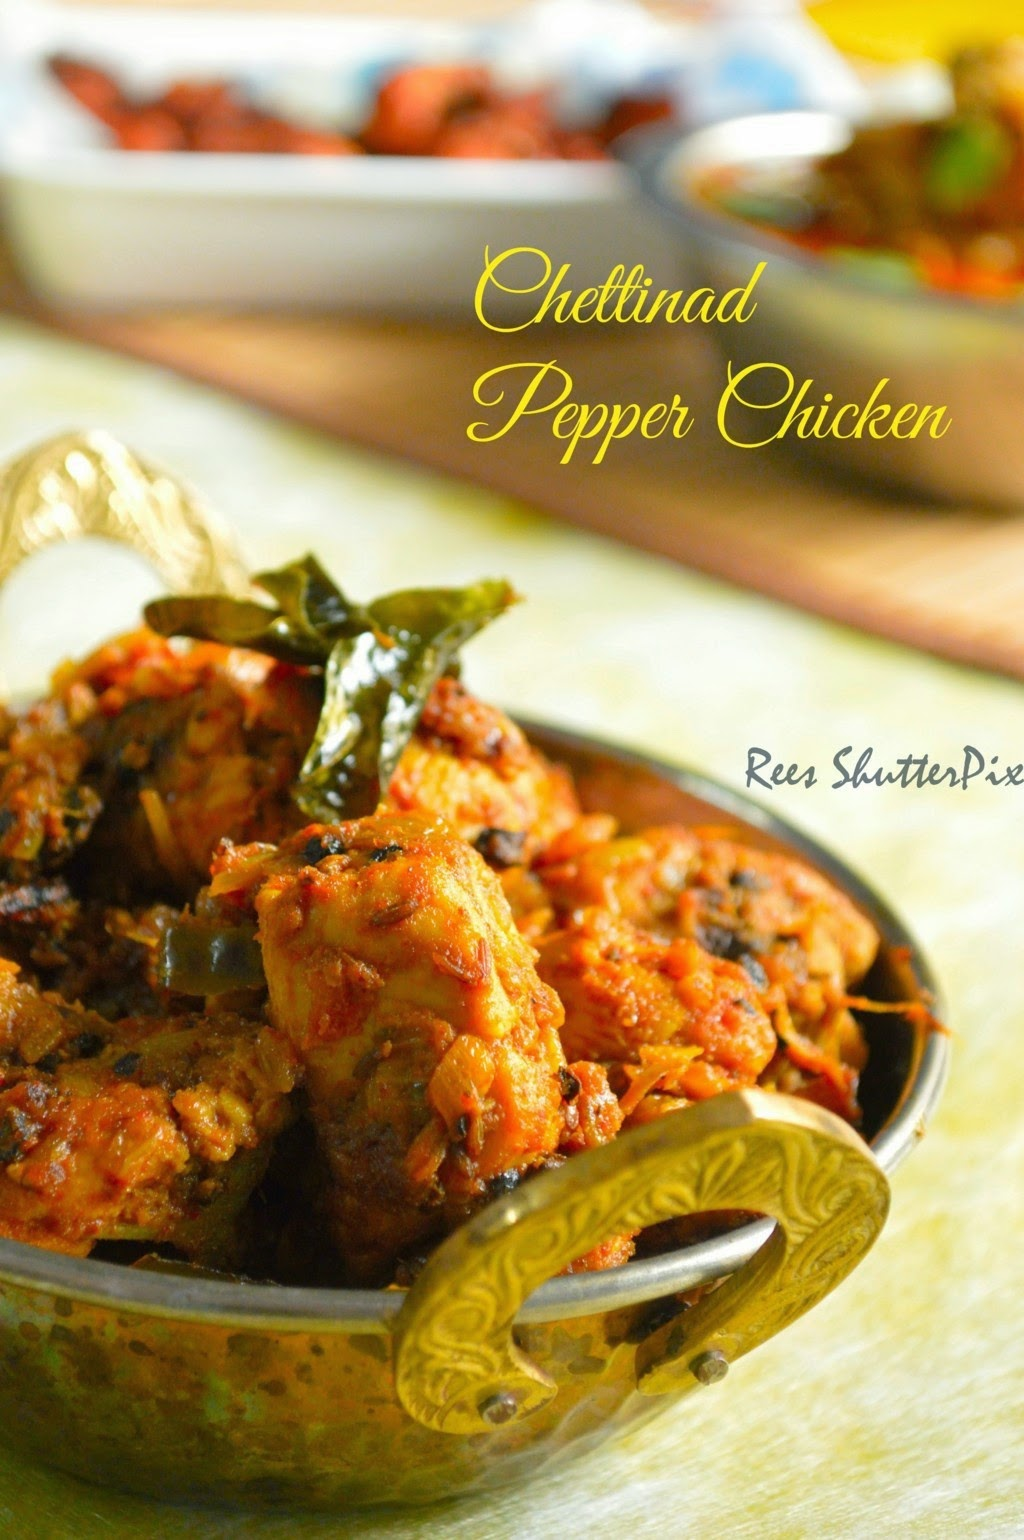 Delectable flavours chettinad recipes chettinad pepper chicken forumfinder Gallery